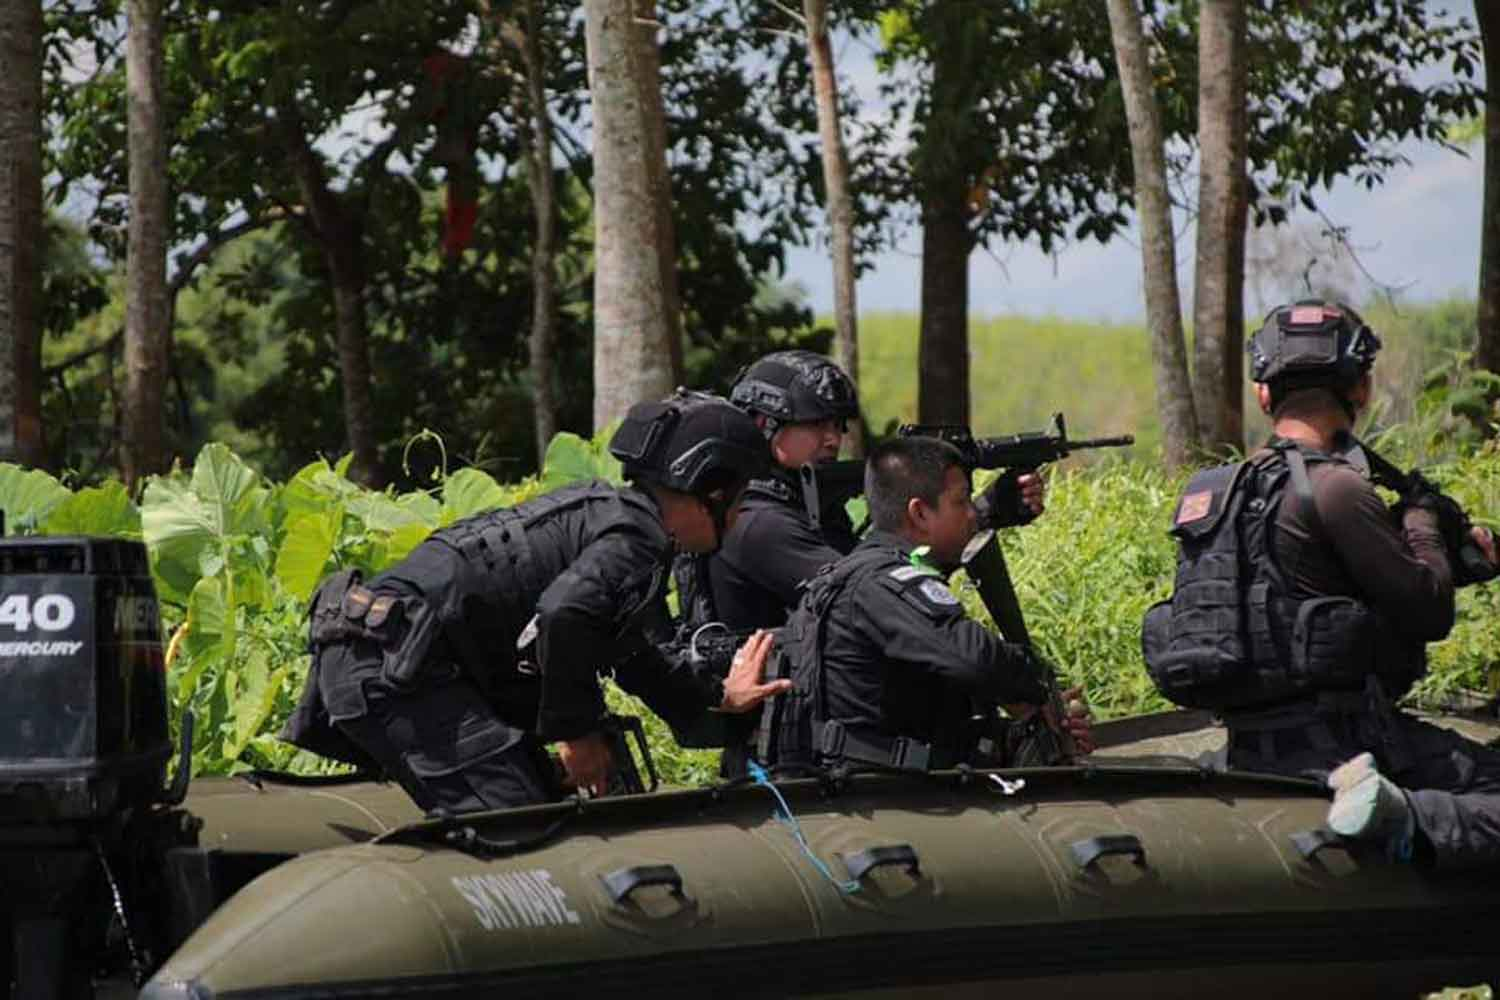 A security unit in an inflatable boat patrols the reservoir of Pattani dam in Yala's Muang district during an operation against insurgents. (Photo: Abdullah Benjakat)